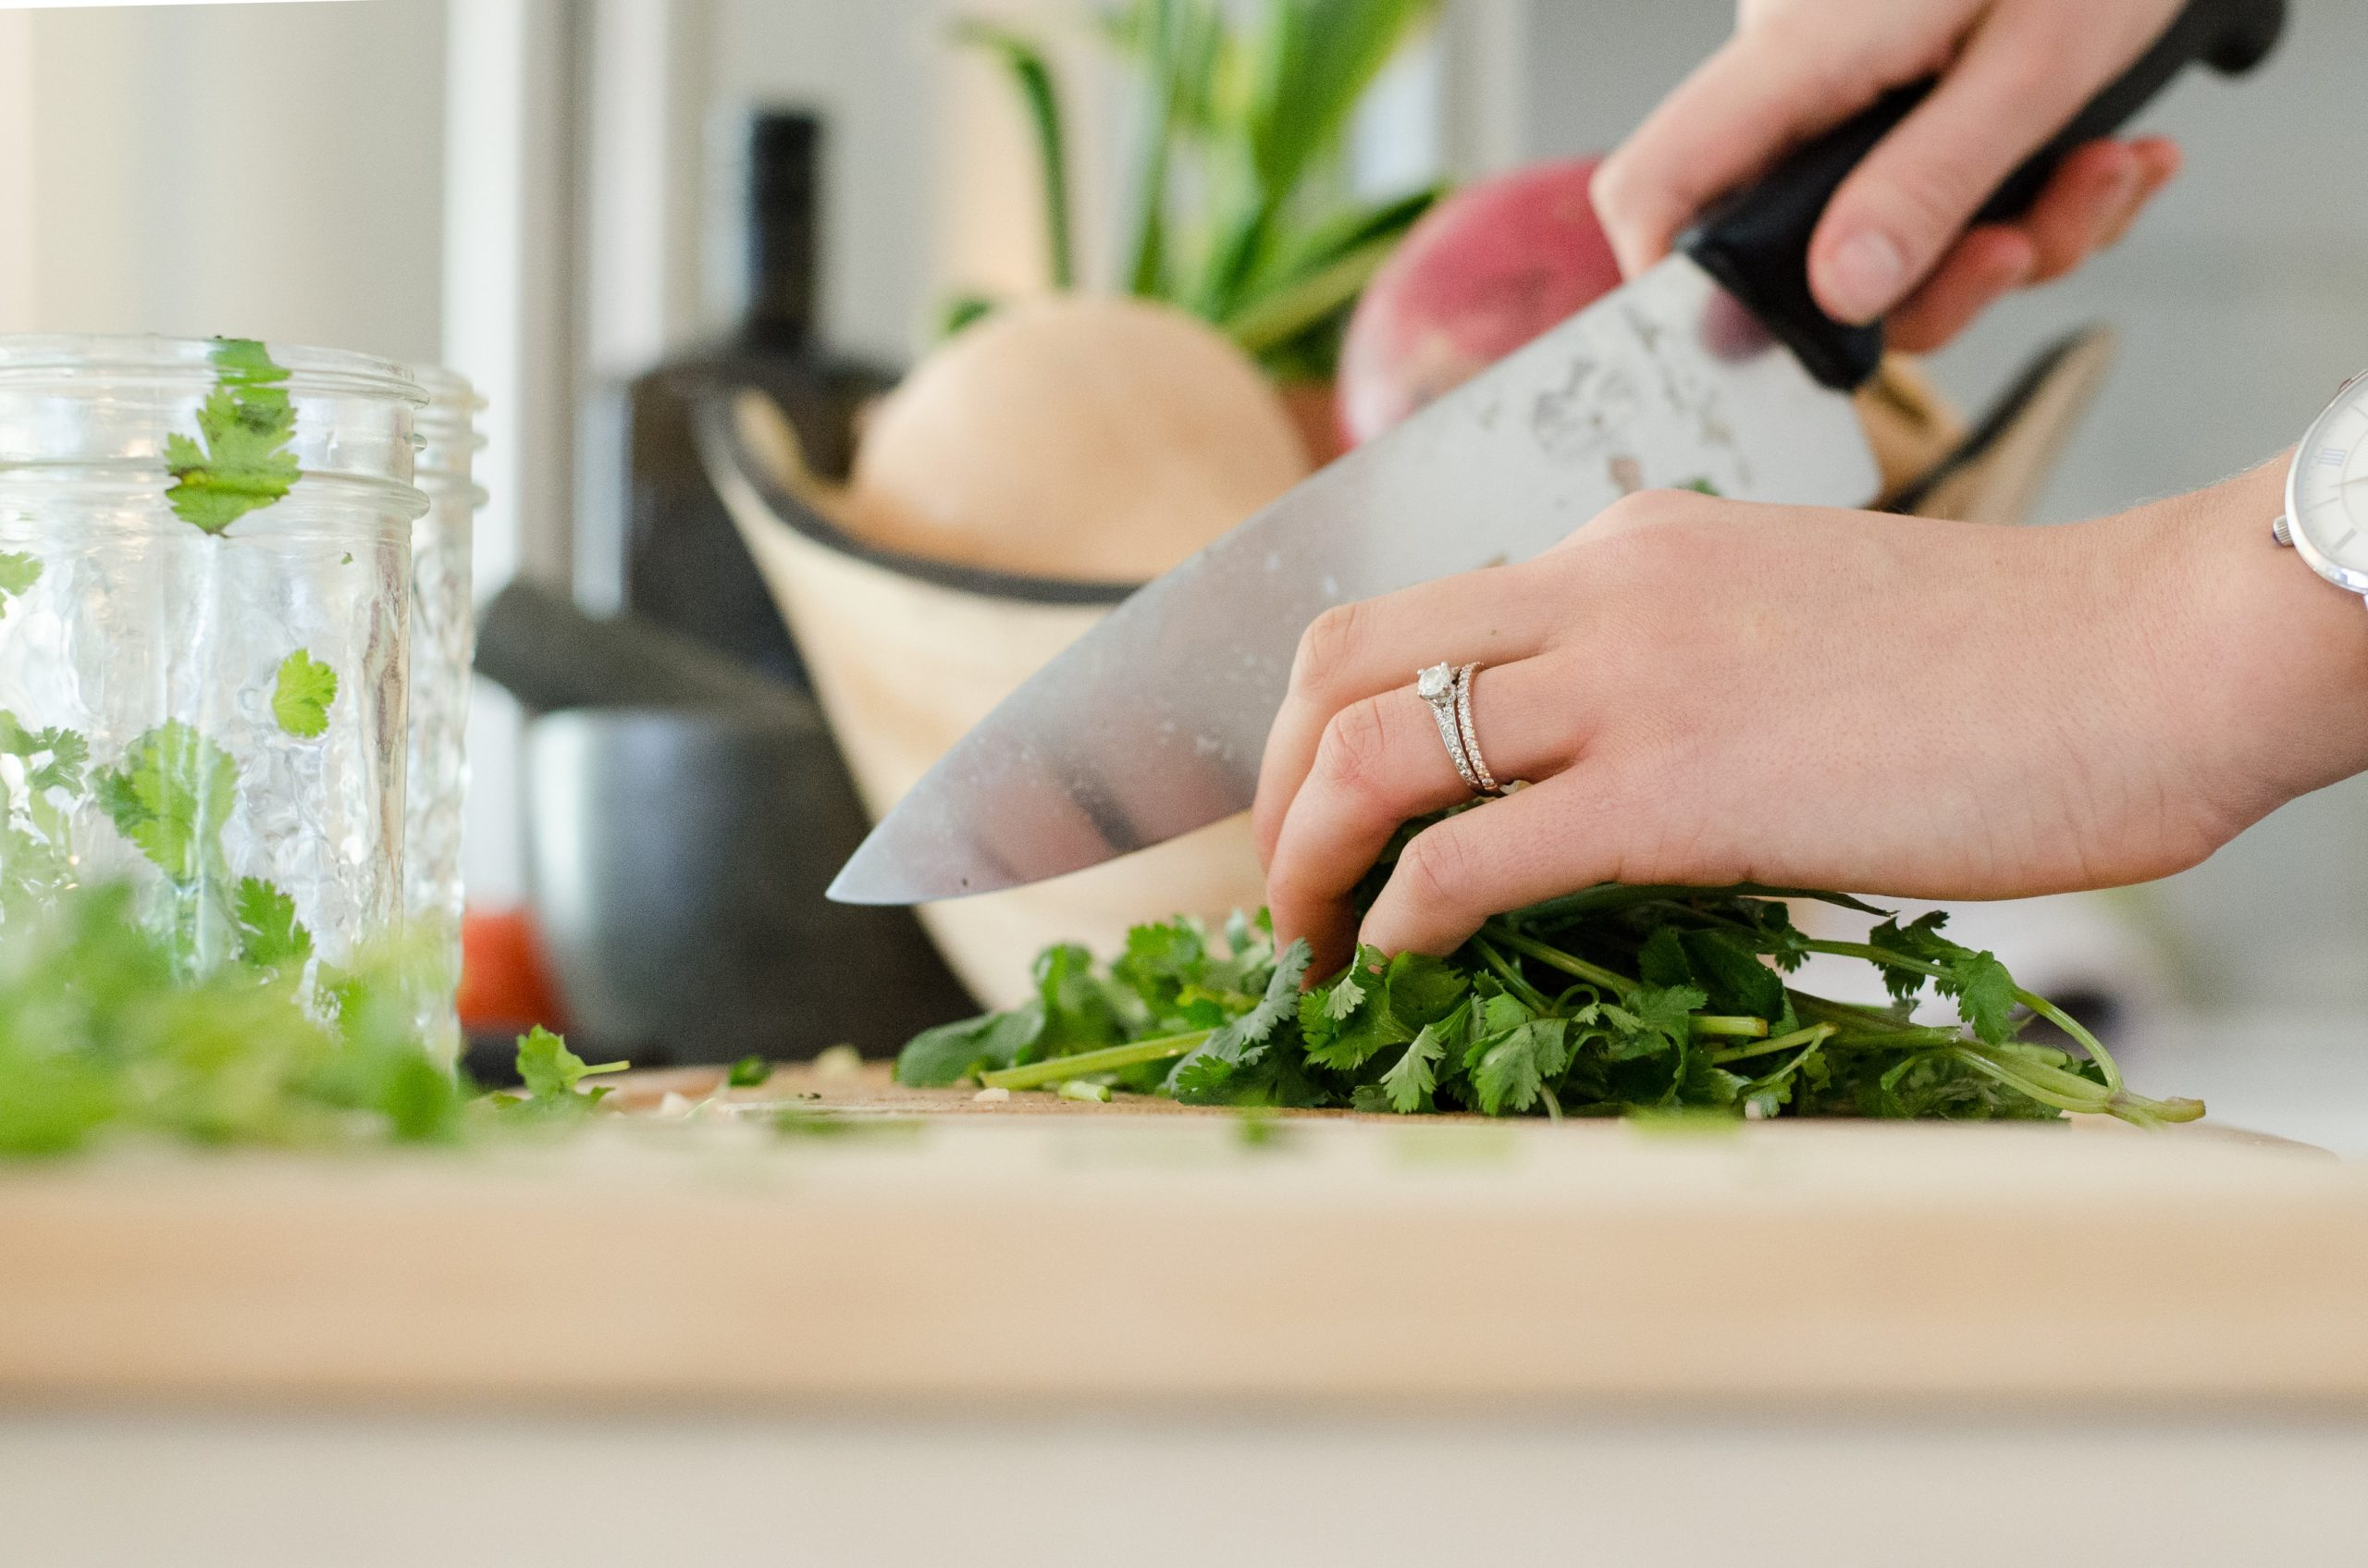 Kitchen preparation tools to make preparing vegetable, salads and meals quicker and easier.